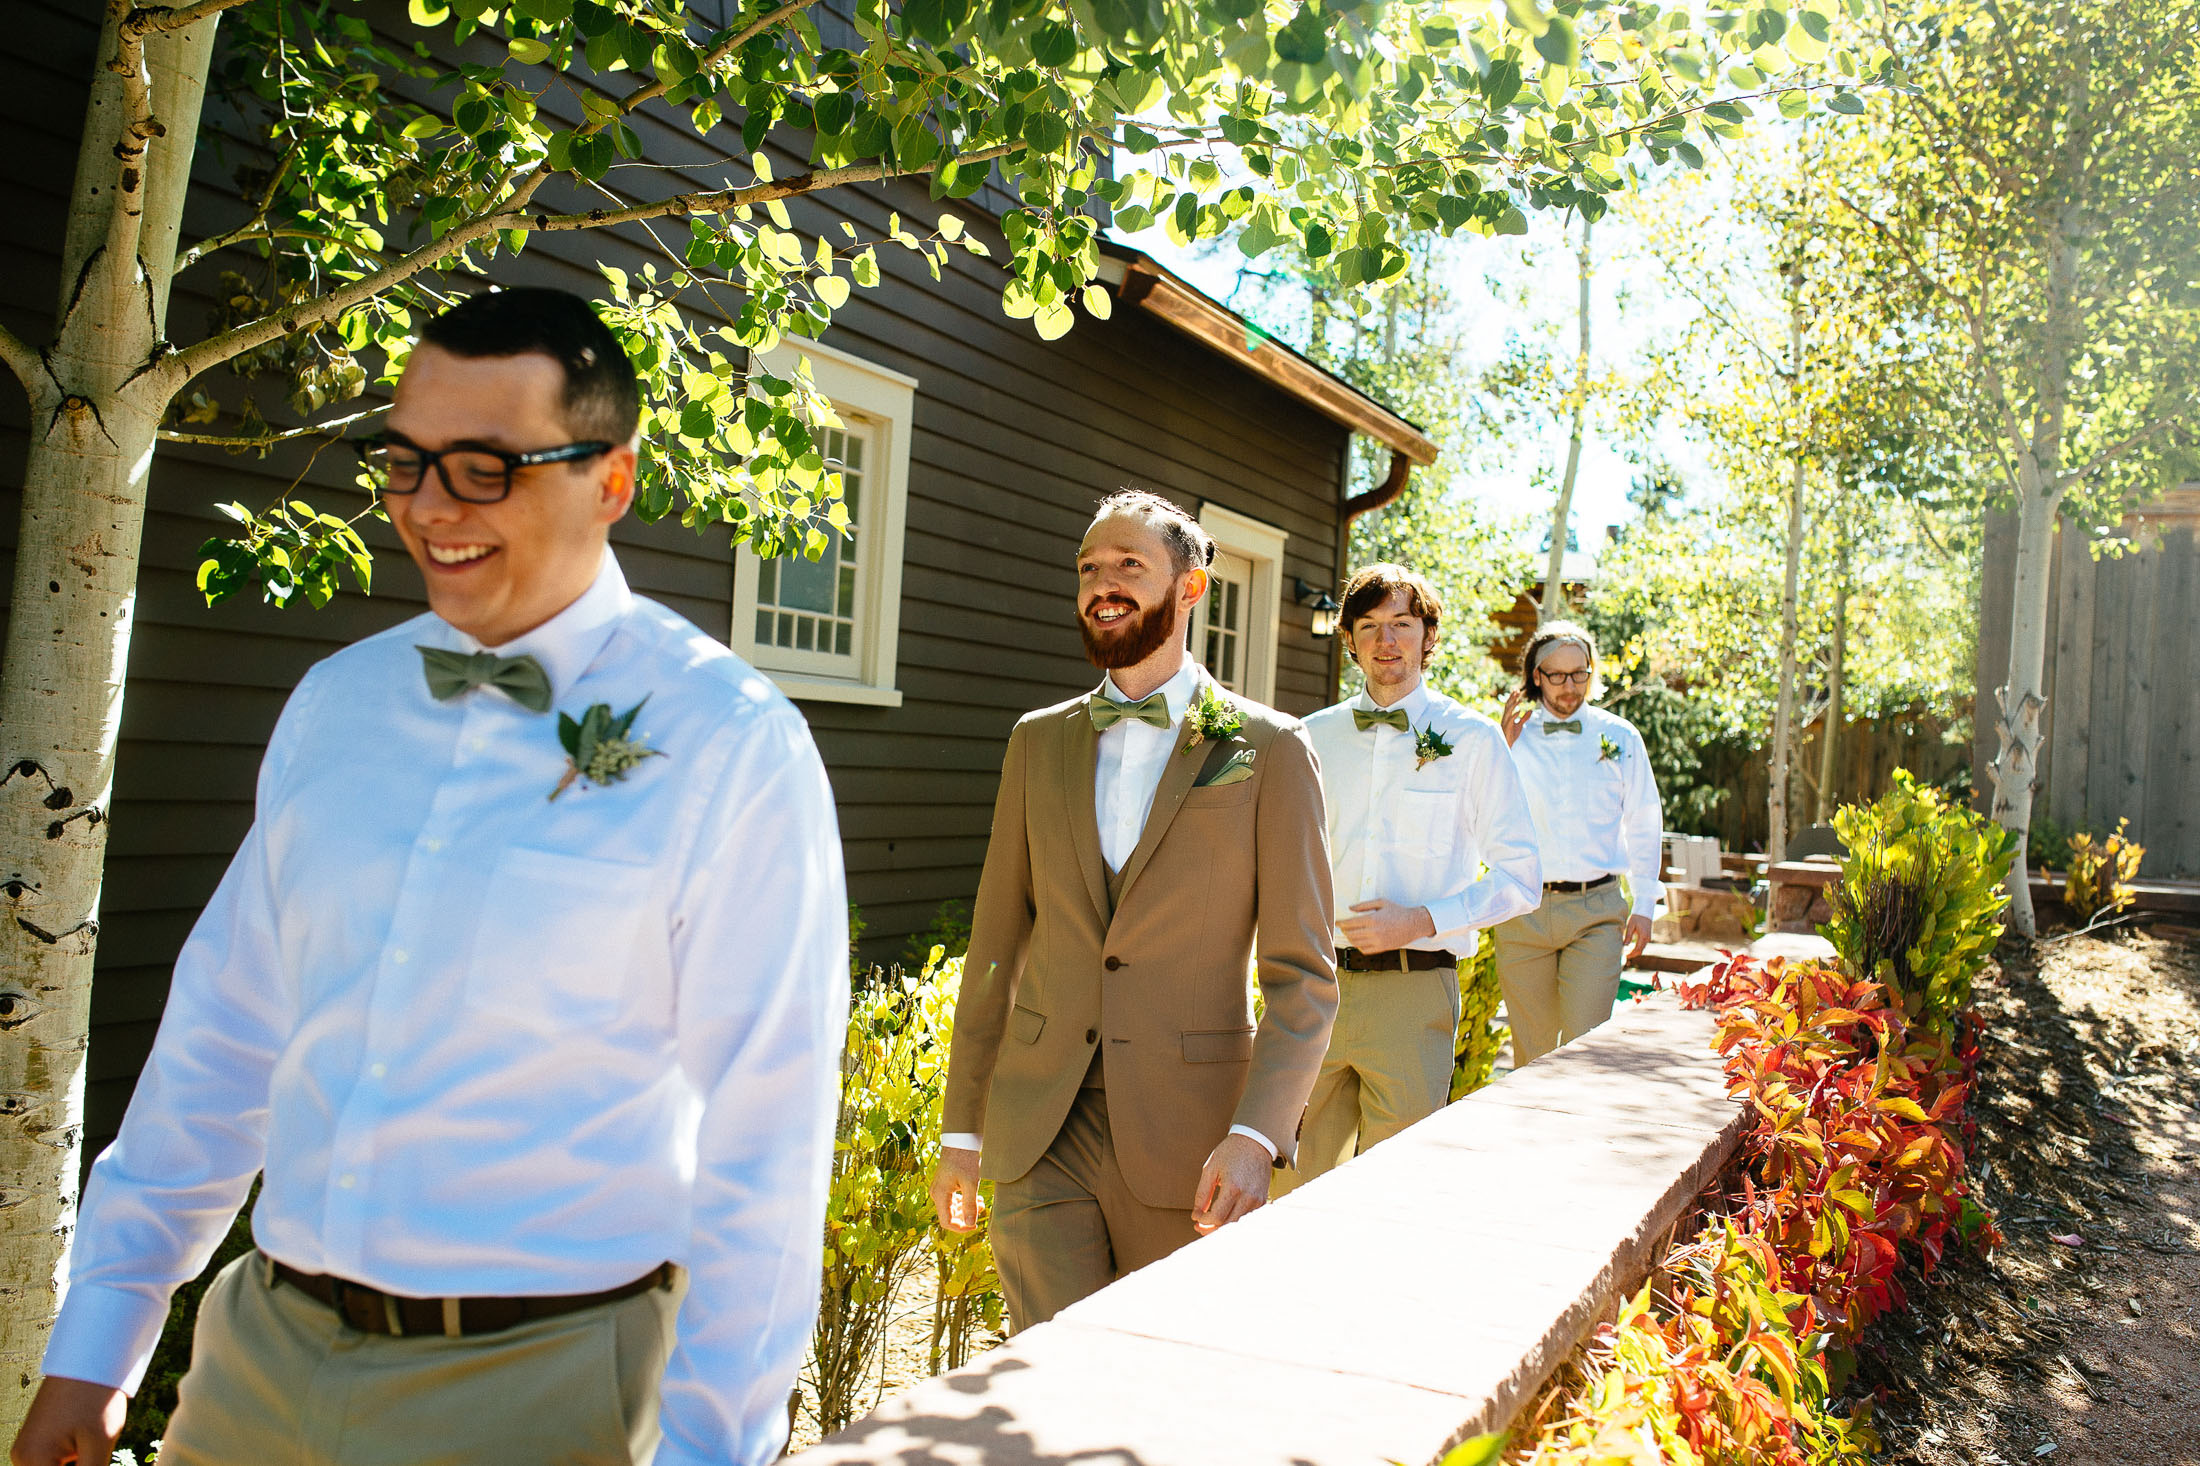 Groom with groomsmen at the Outlook Lodge.